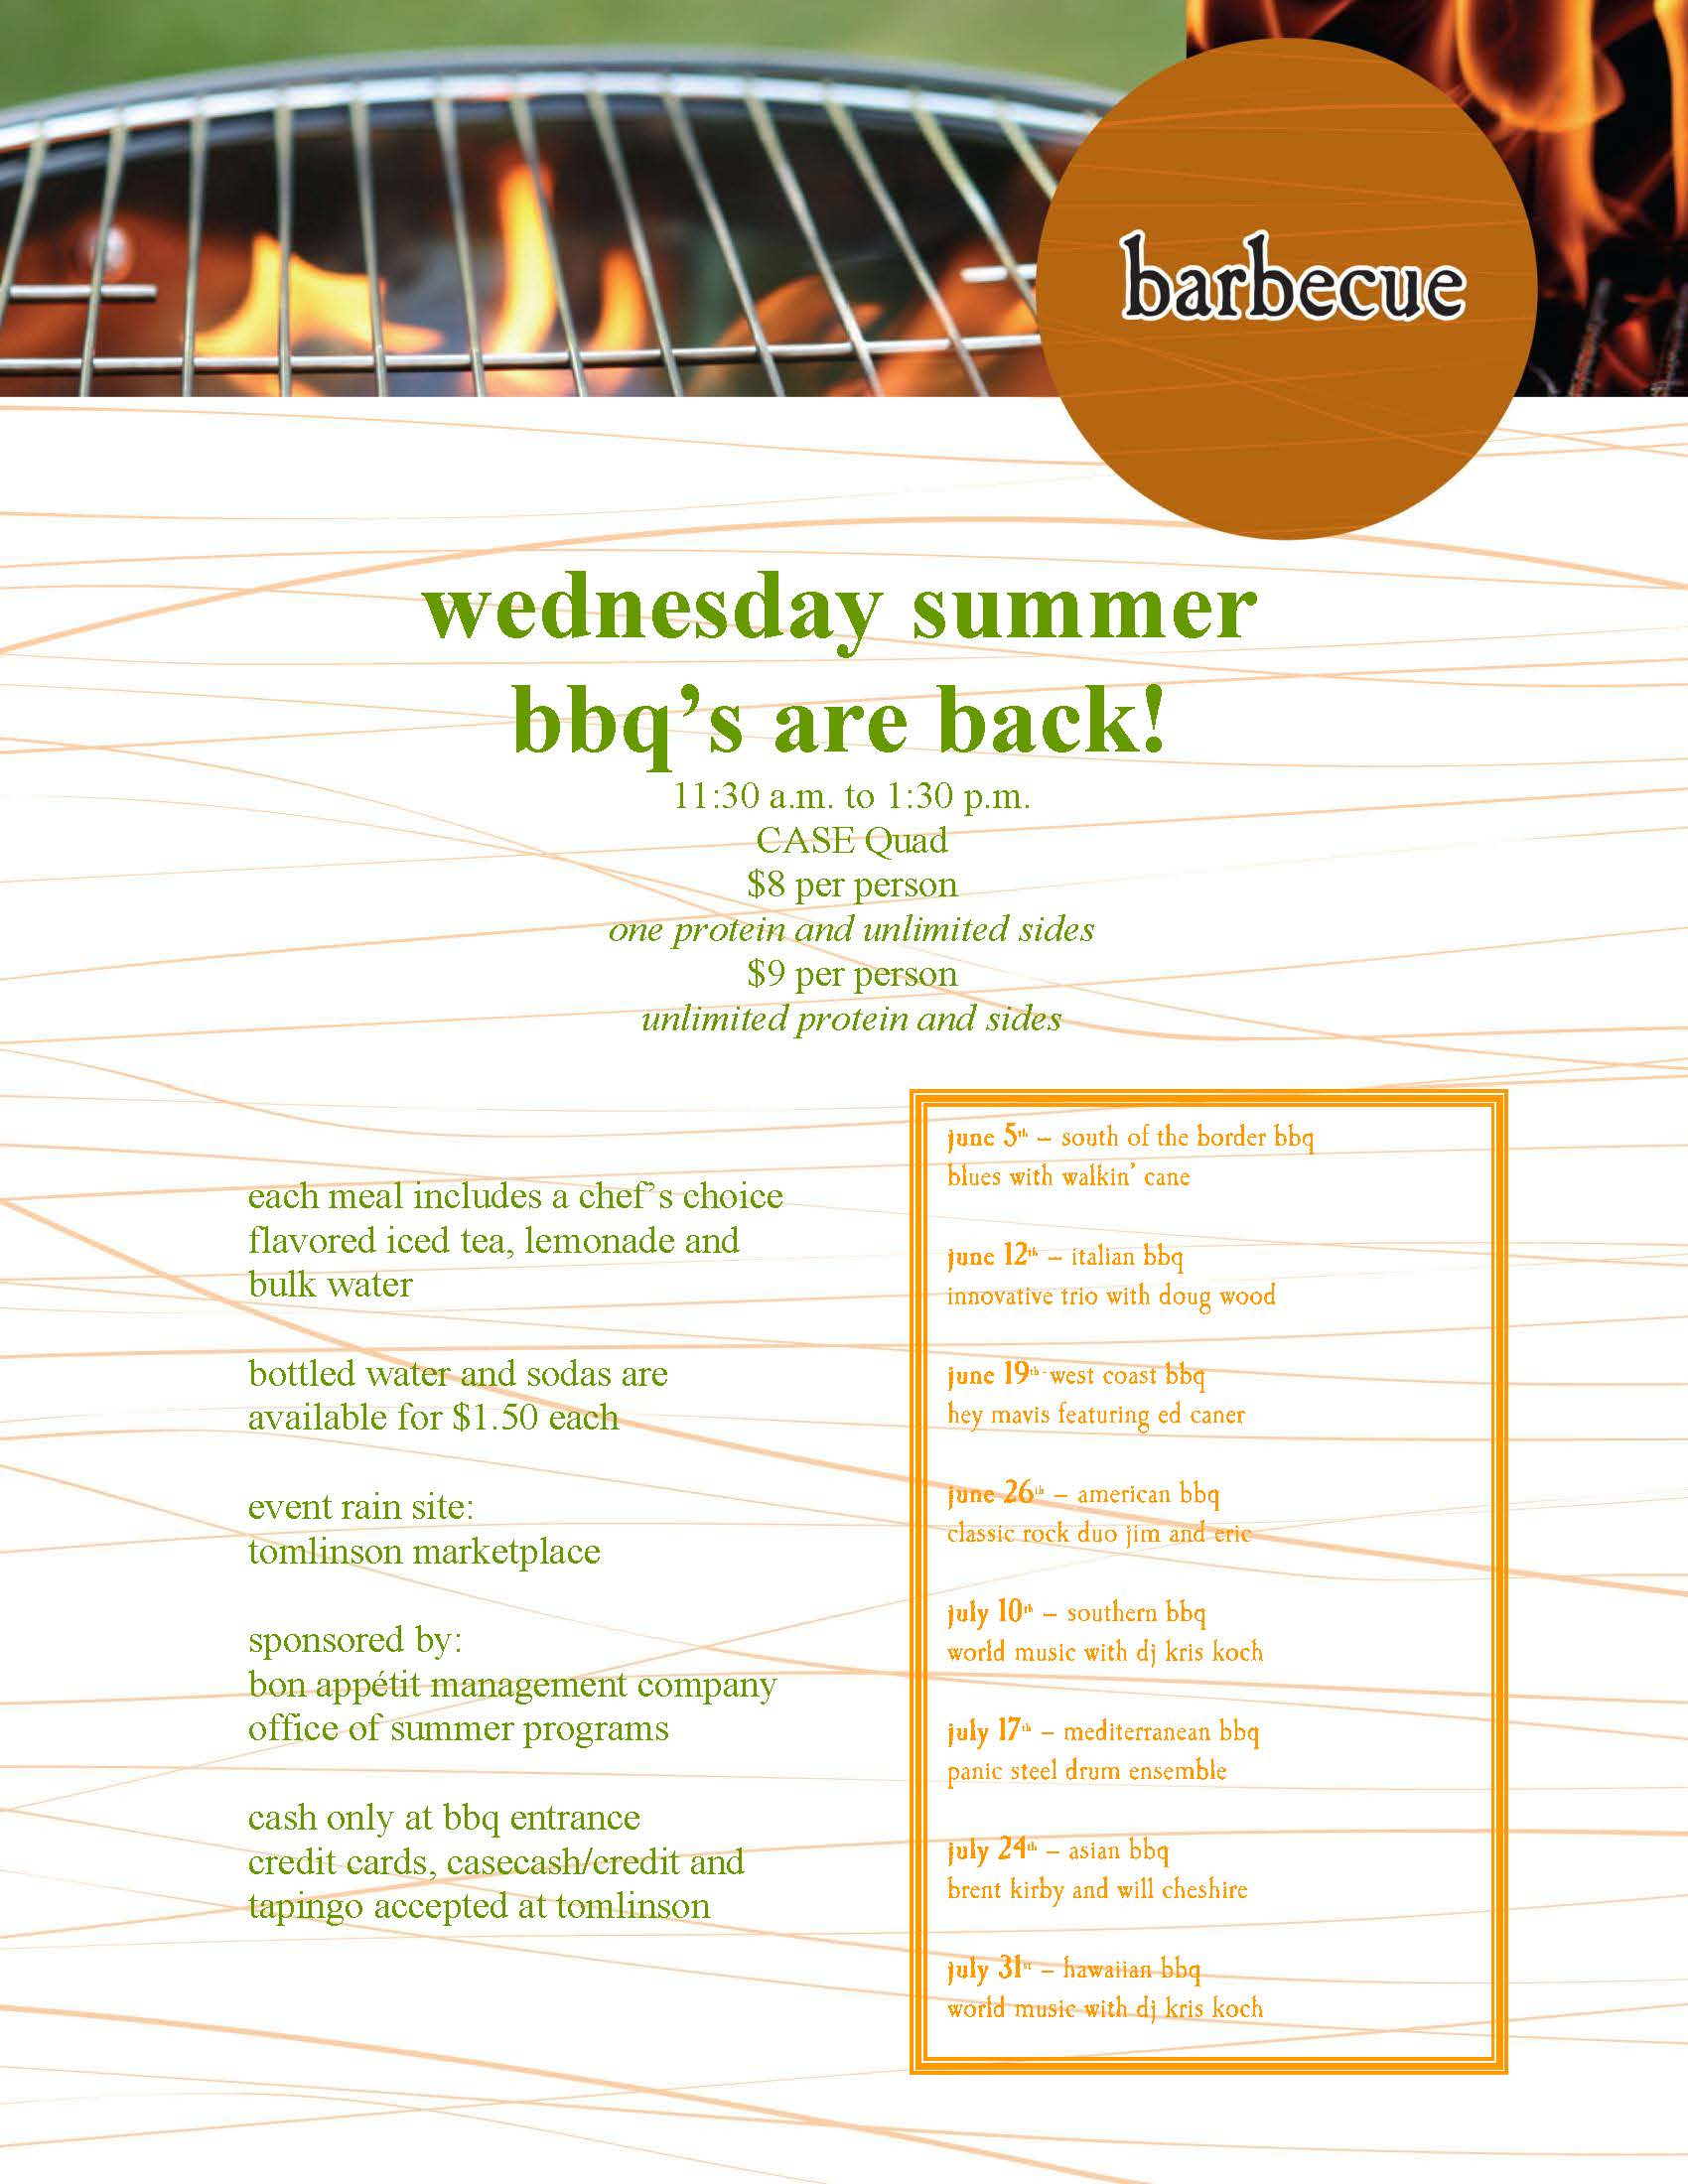 Wednesday s bbq on the quad features italian menu local music for The local italian menu